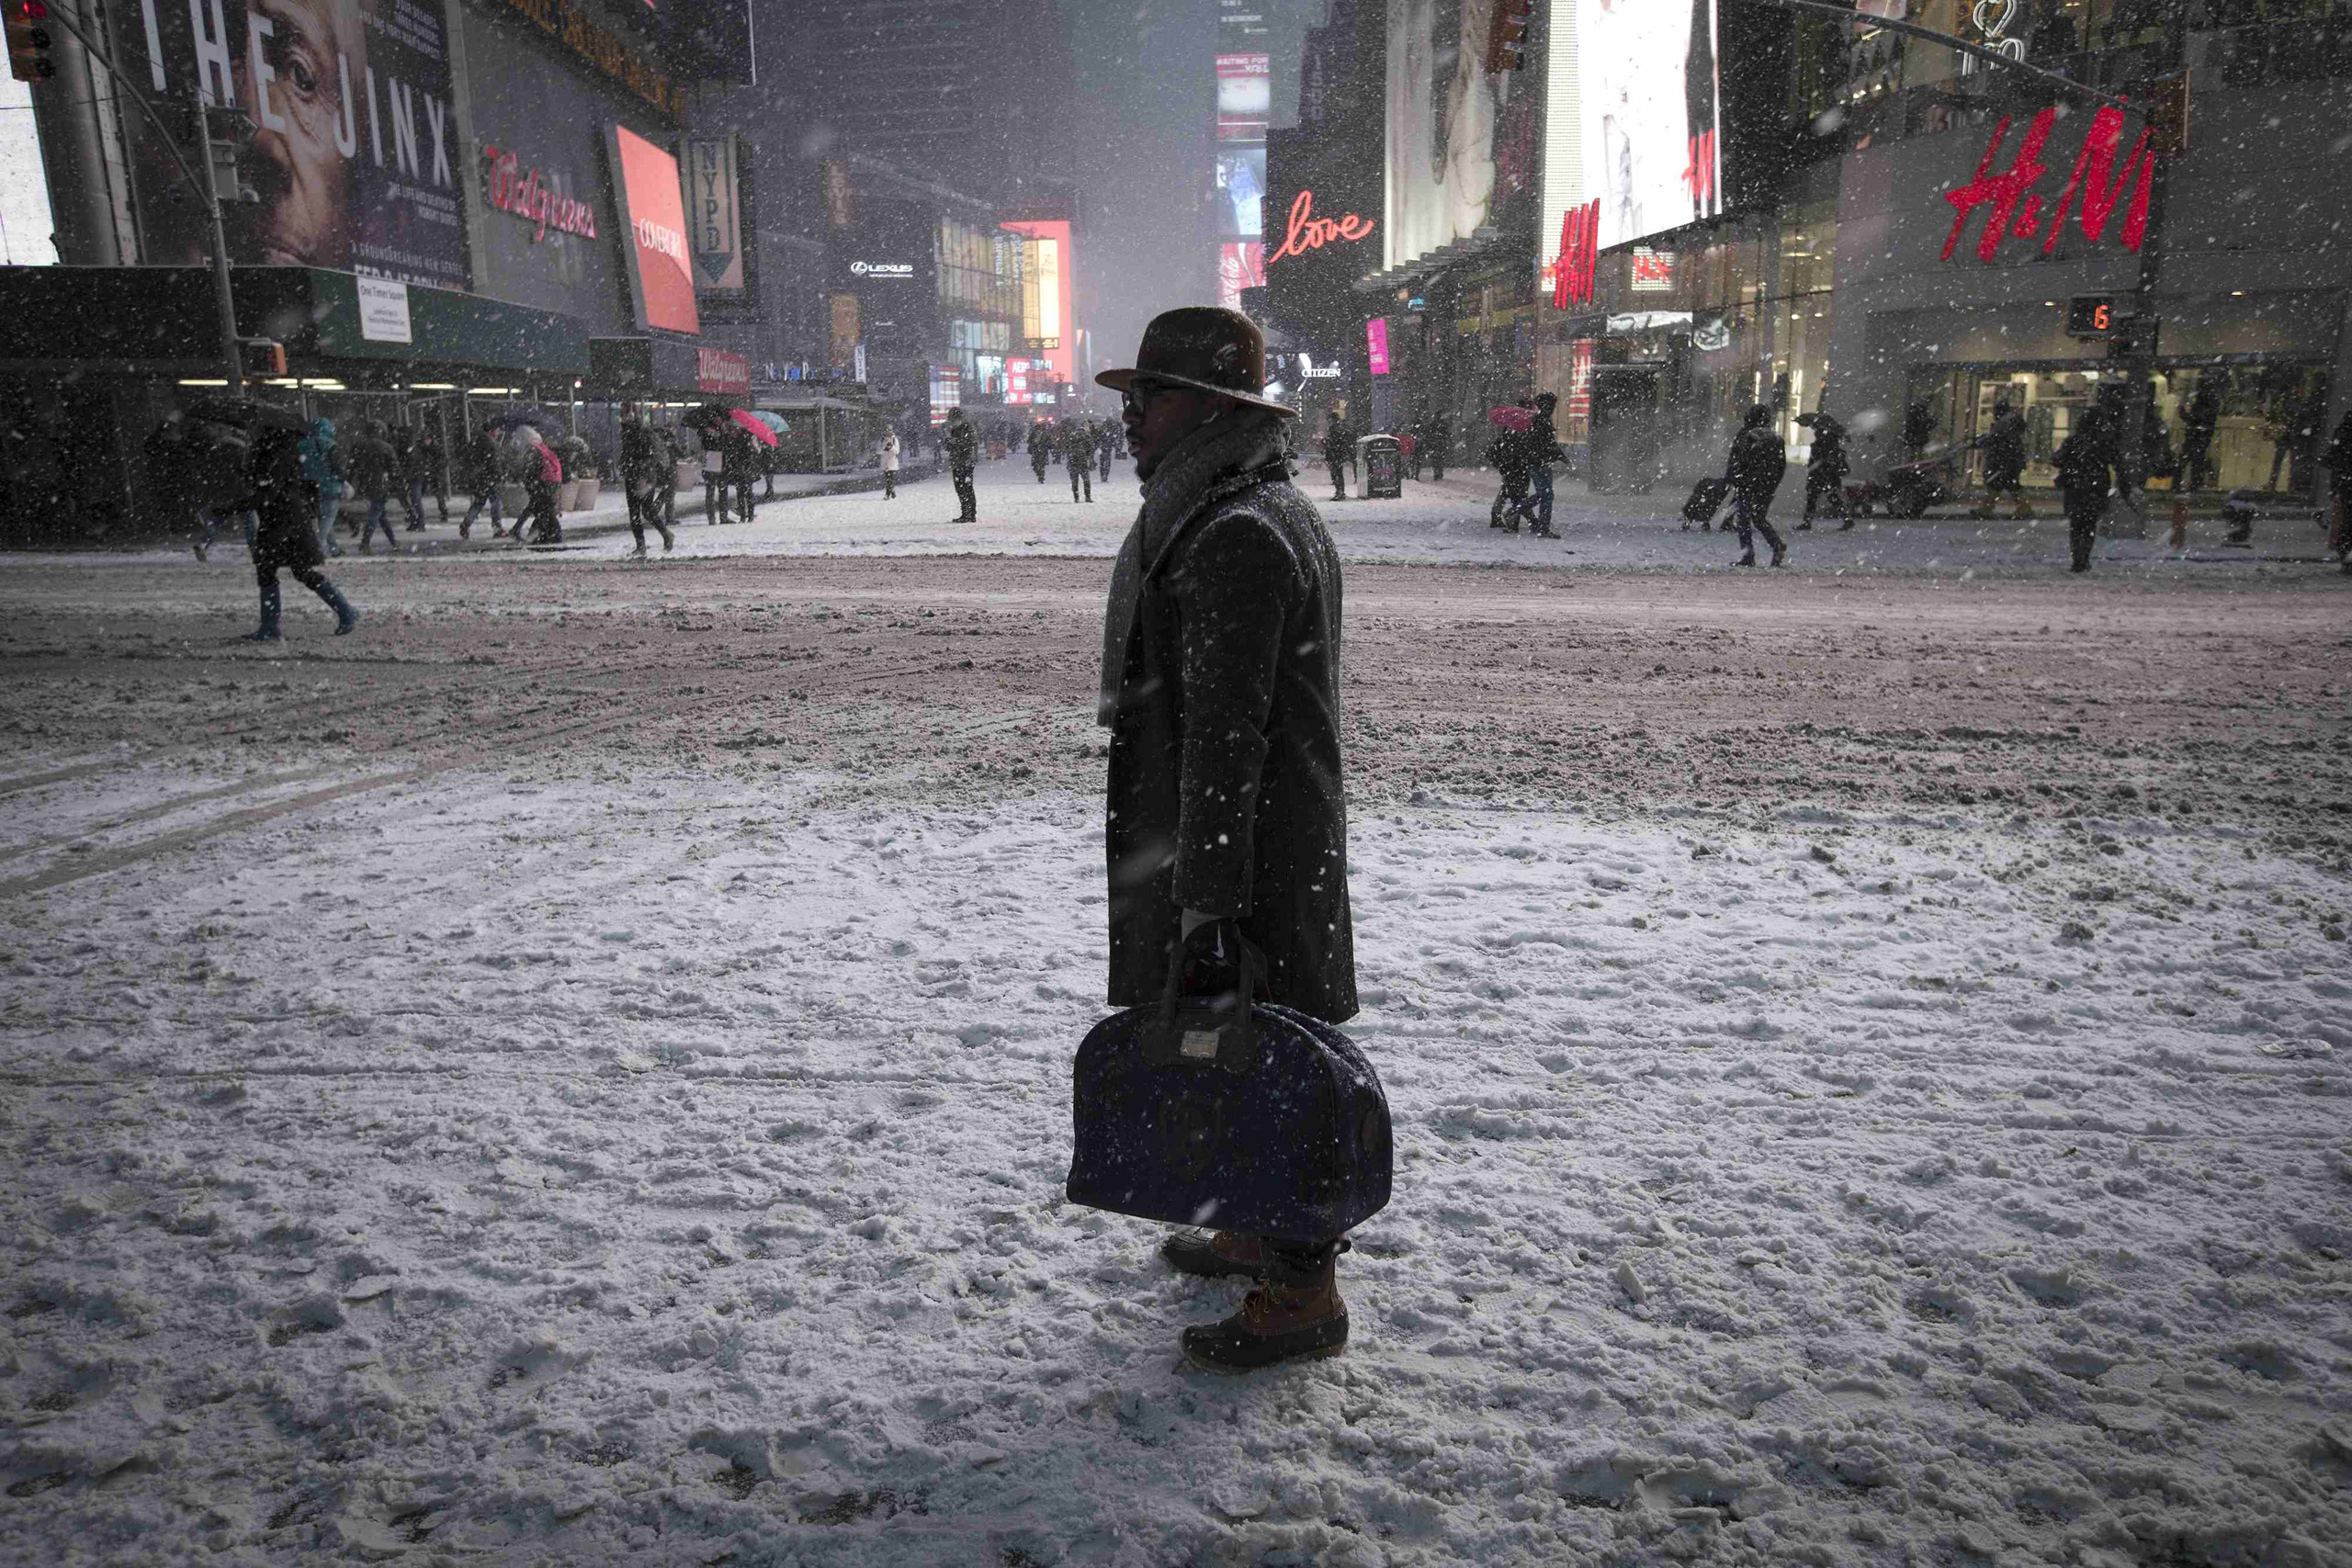 A man stands in falling snow on West 42nd street in Times Square in New York City on Jan. 26, 2015.